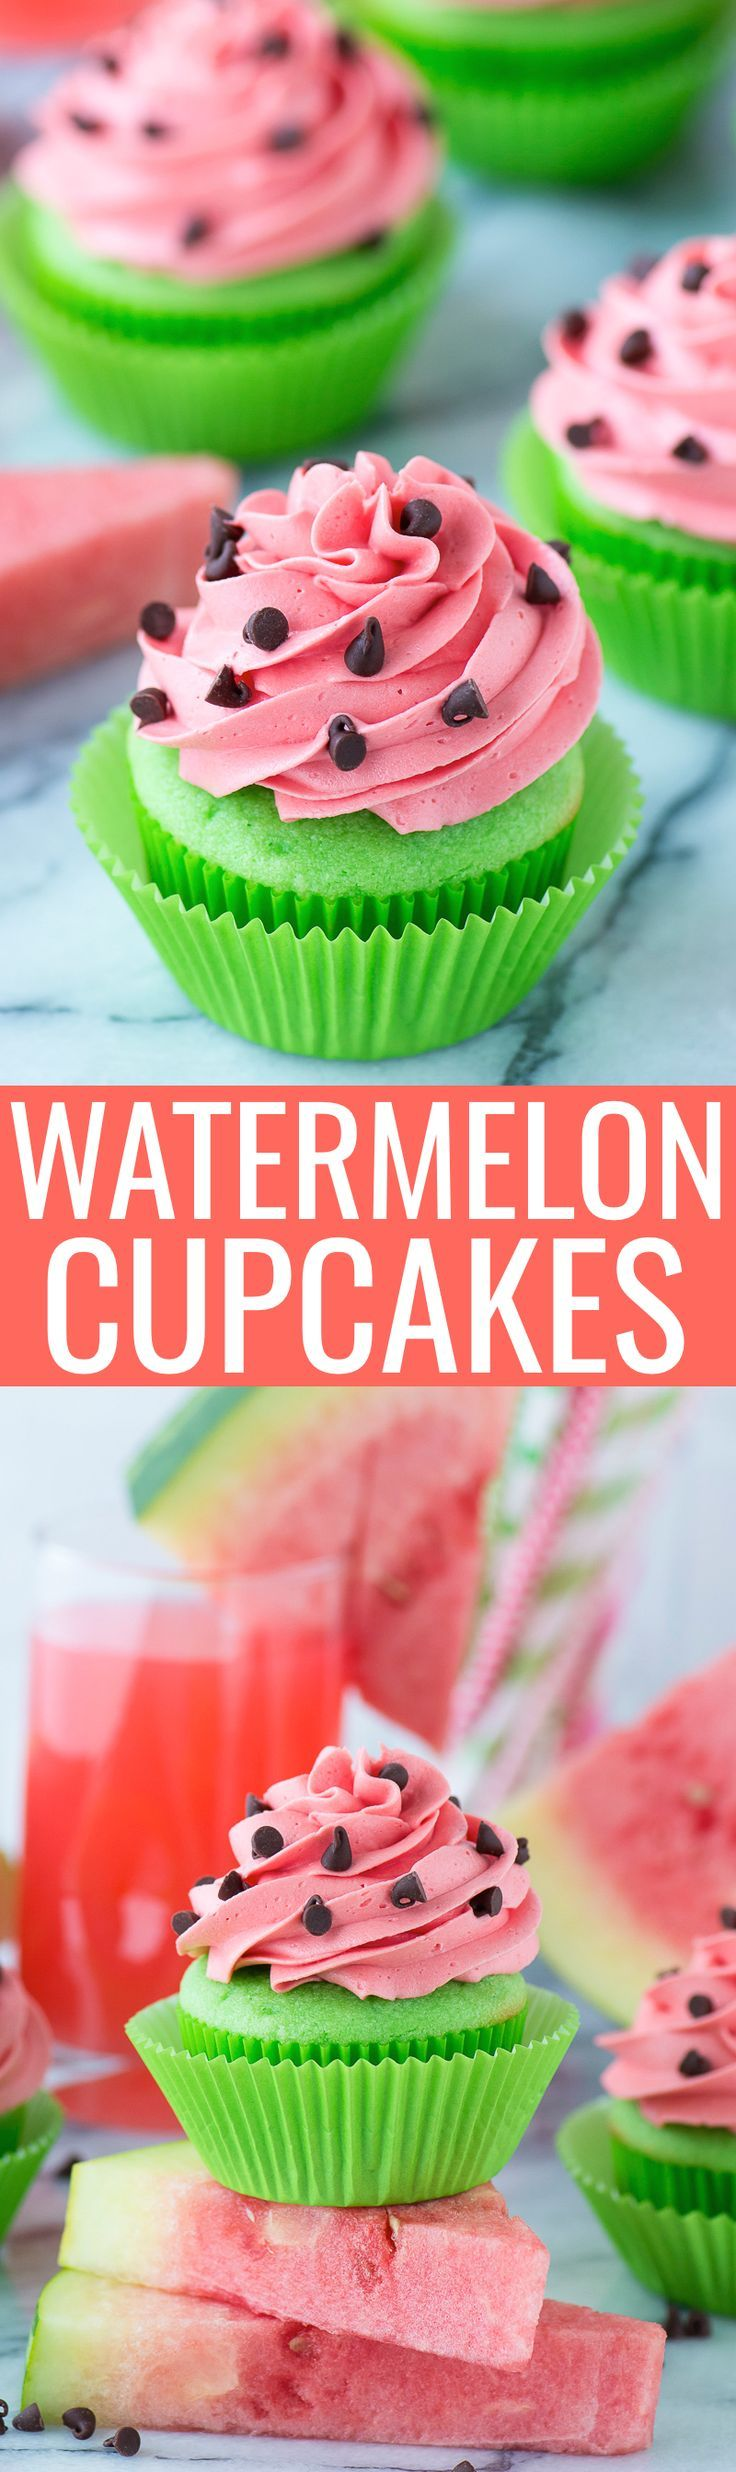 Watermelon Cupcakes Bright green cupcakes with buttercream that